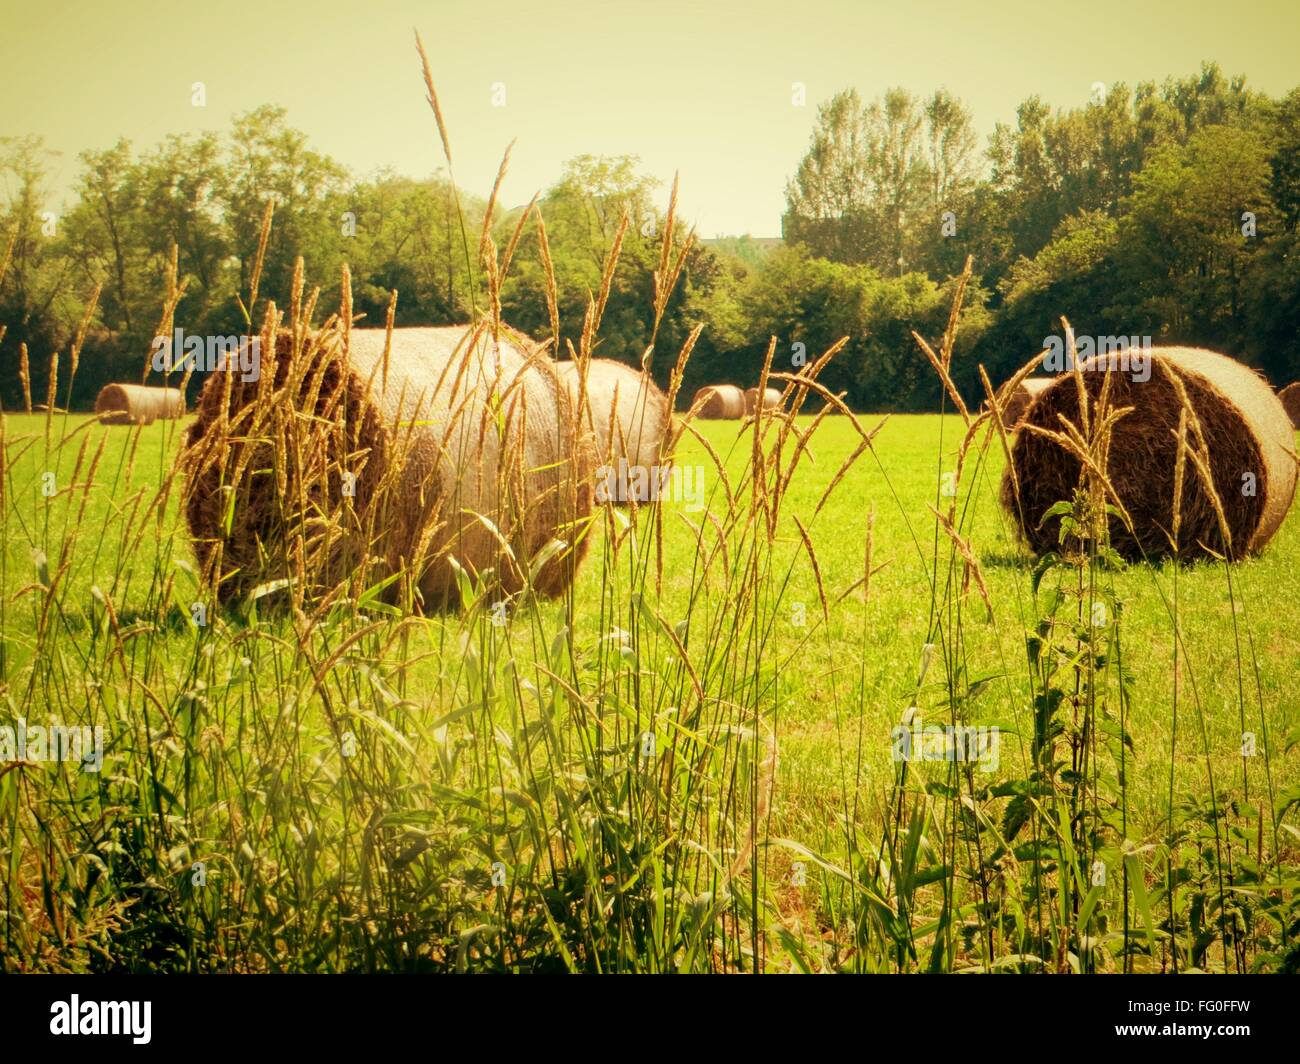 Hay Bales in Field Photo Stock